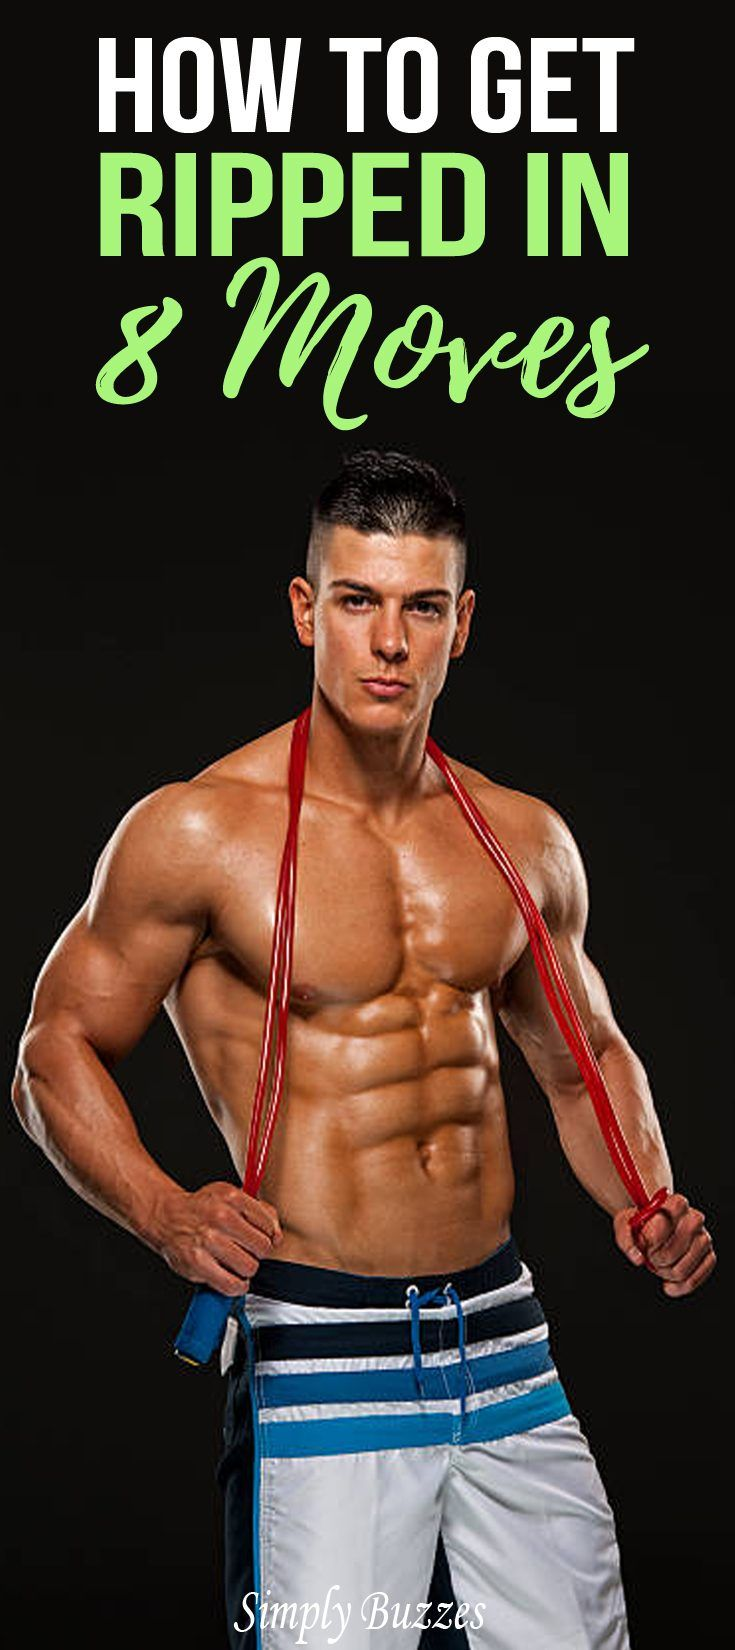 How To Get Ripped In 8 Moves Simplybuzzes Com Pinterest